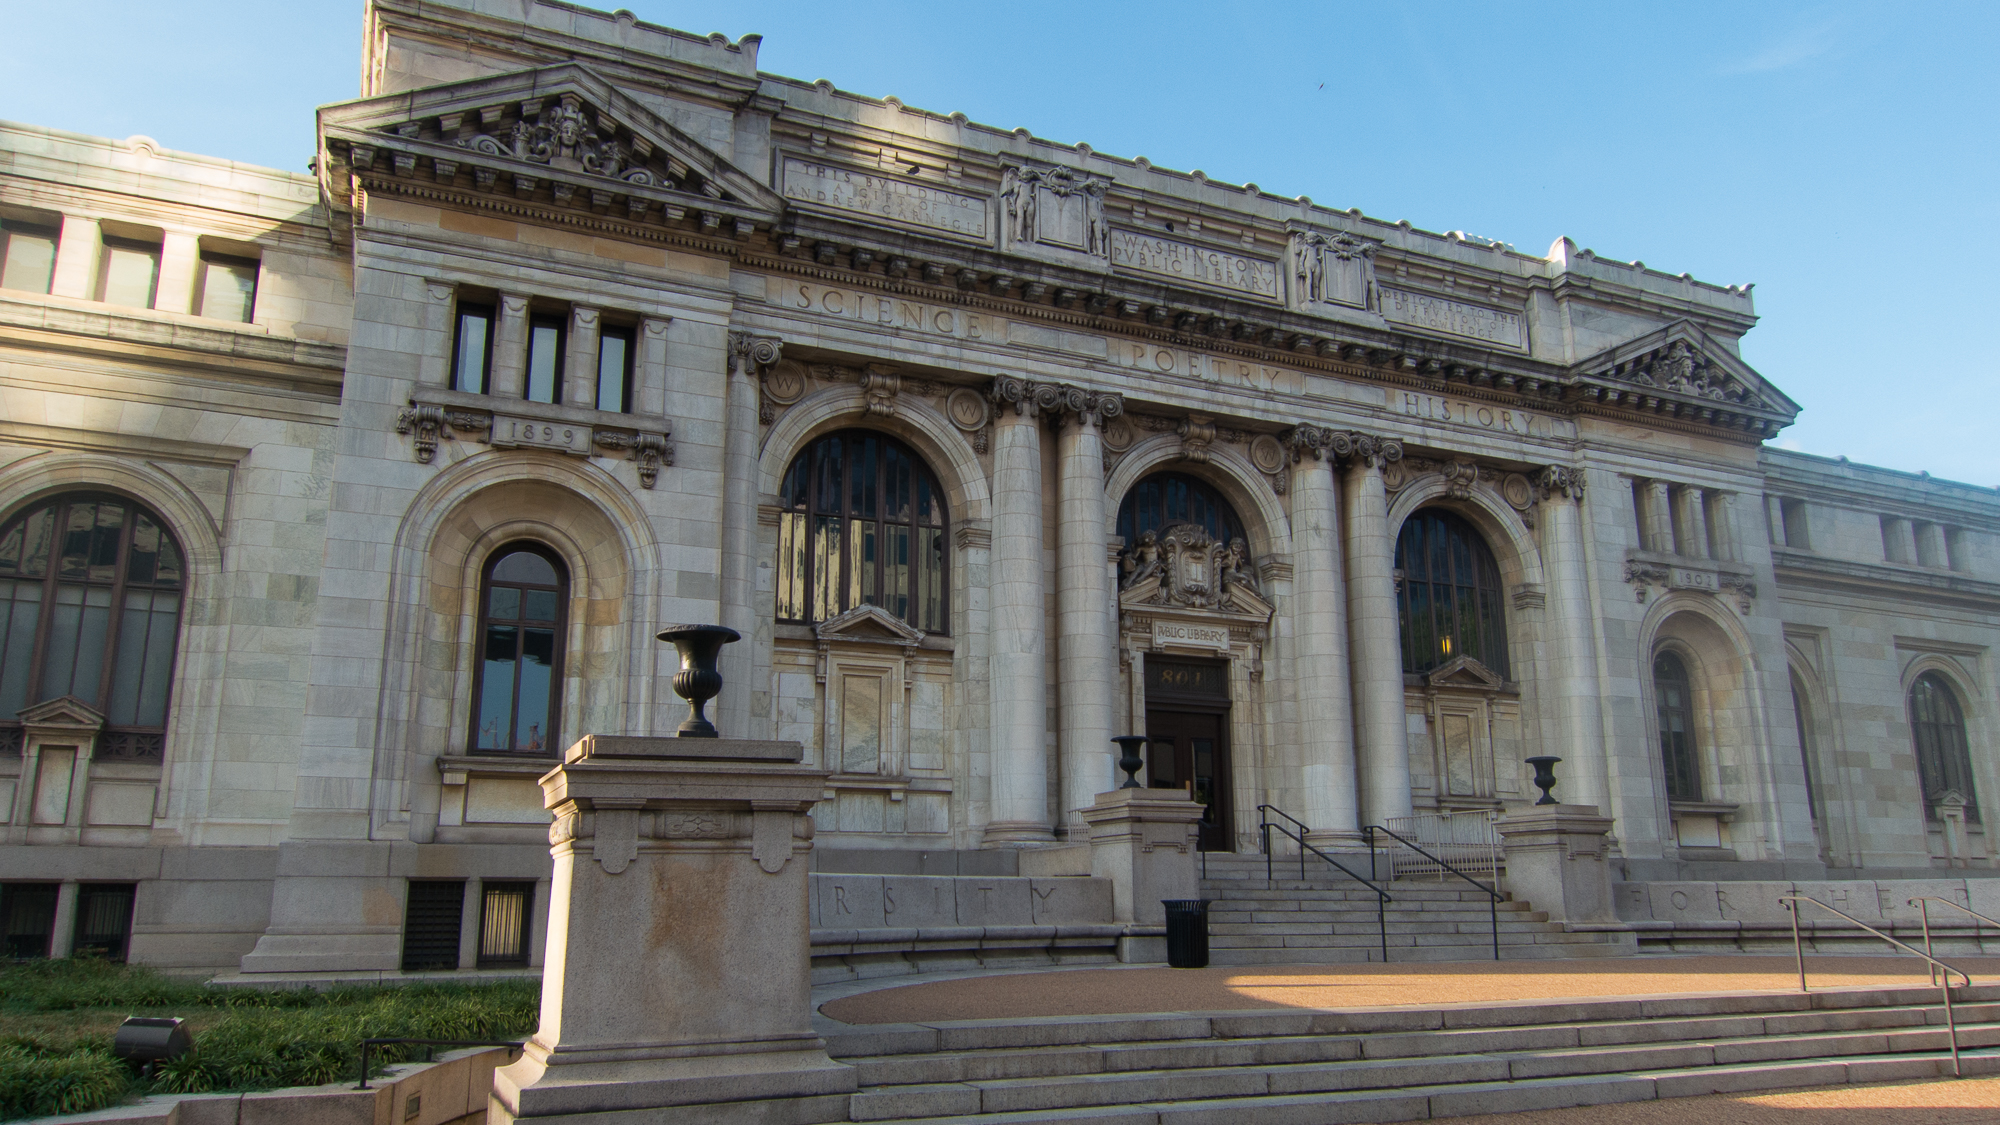 Entrance to the Carnegie Library. Image by Mark Schierbecker - Own work, CC BY-SA 4.0, https://commons.wikimedia.org/w/index.php?curid=34665265